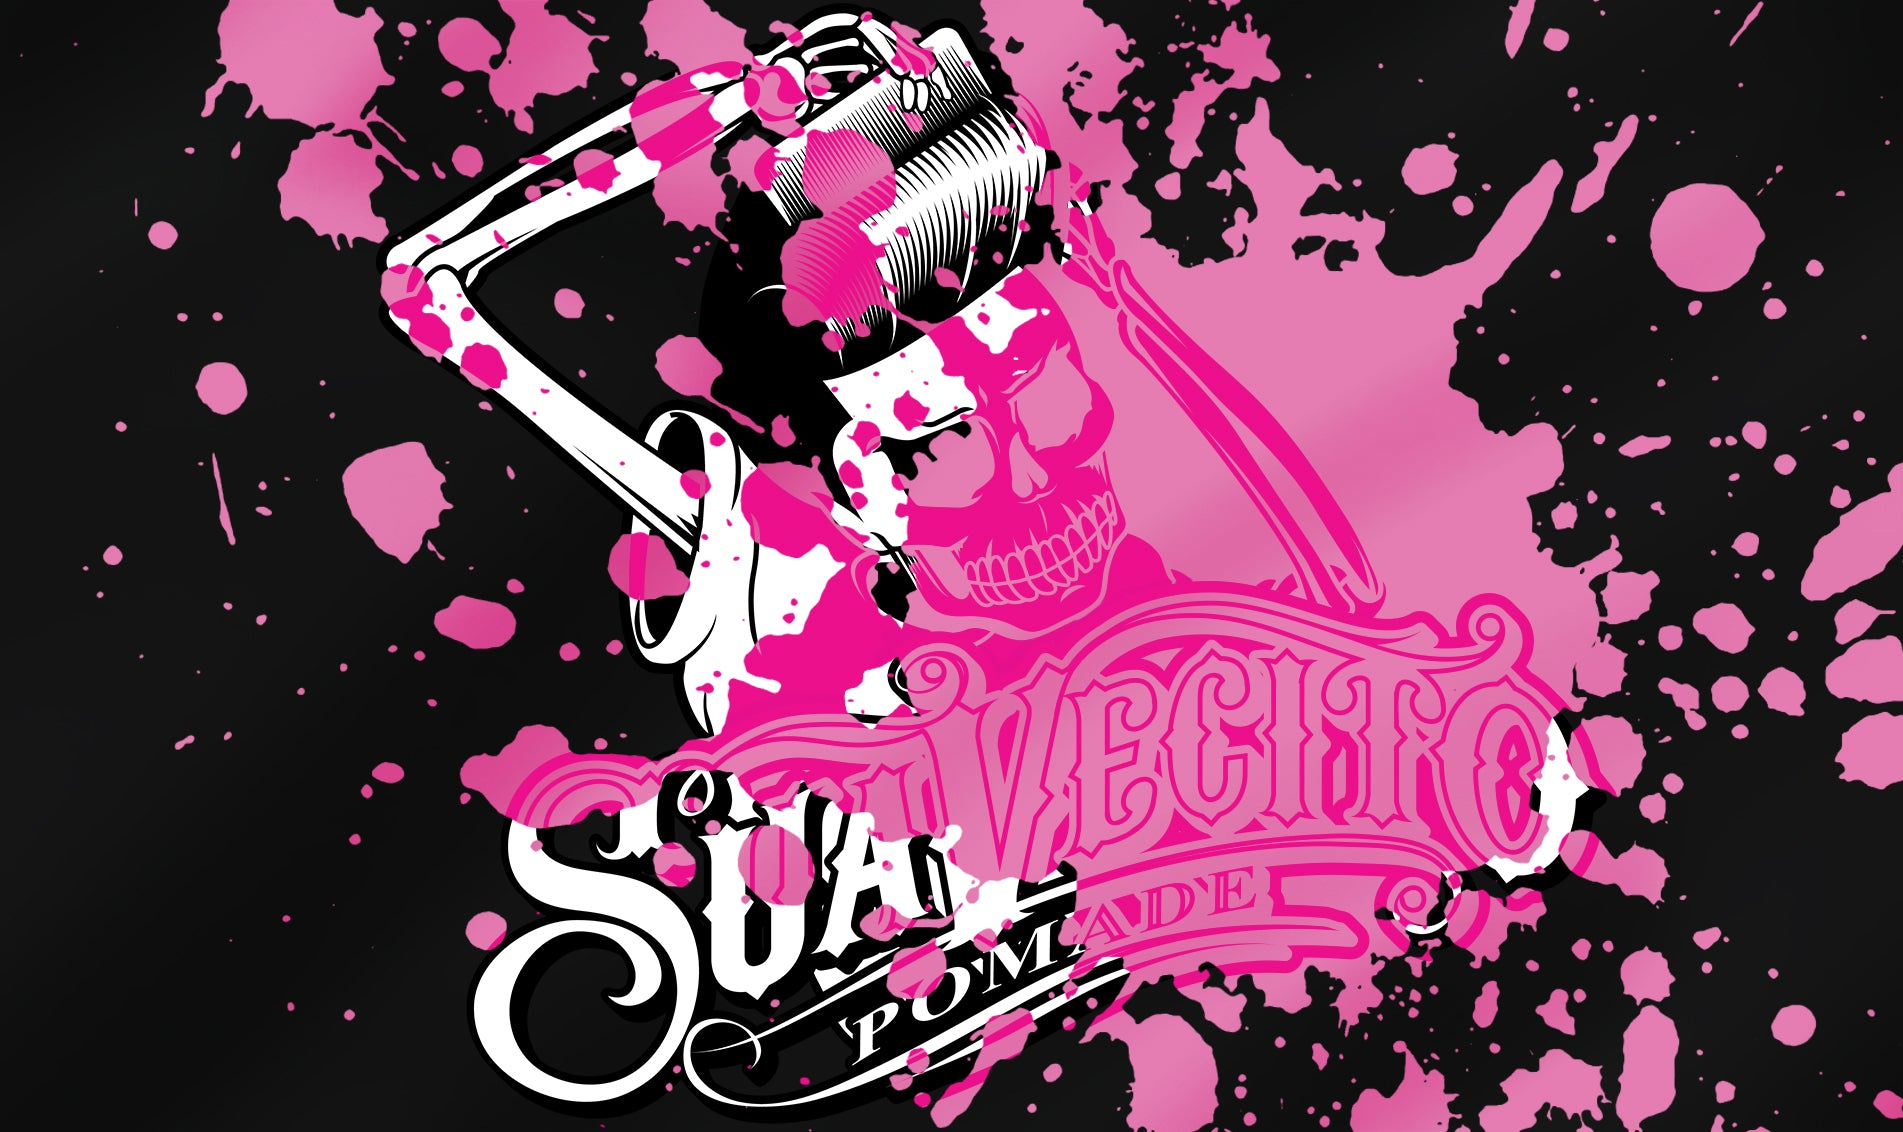 Suavecito X Breast Cancer Solutions